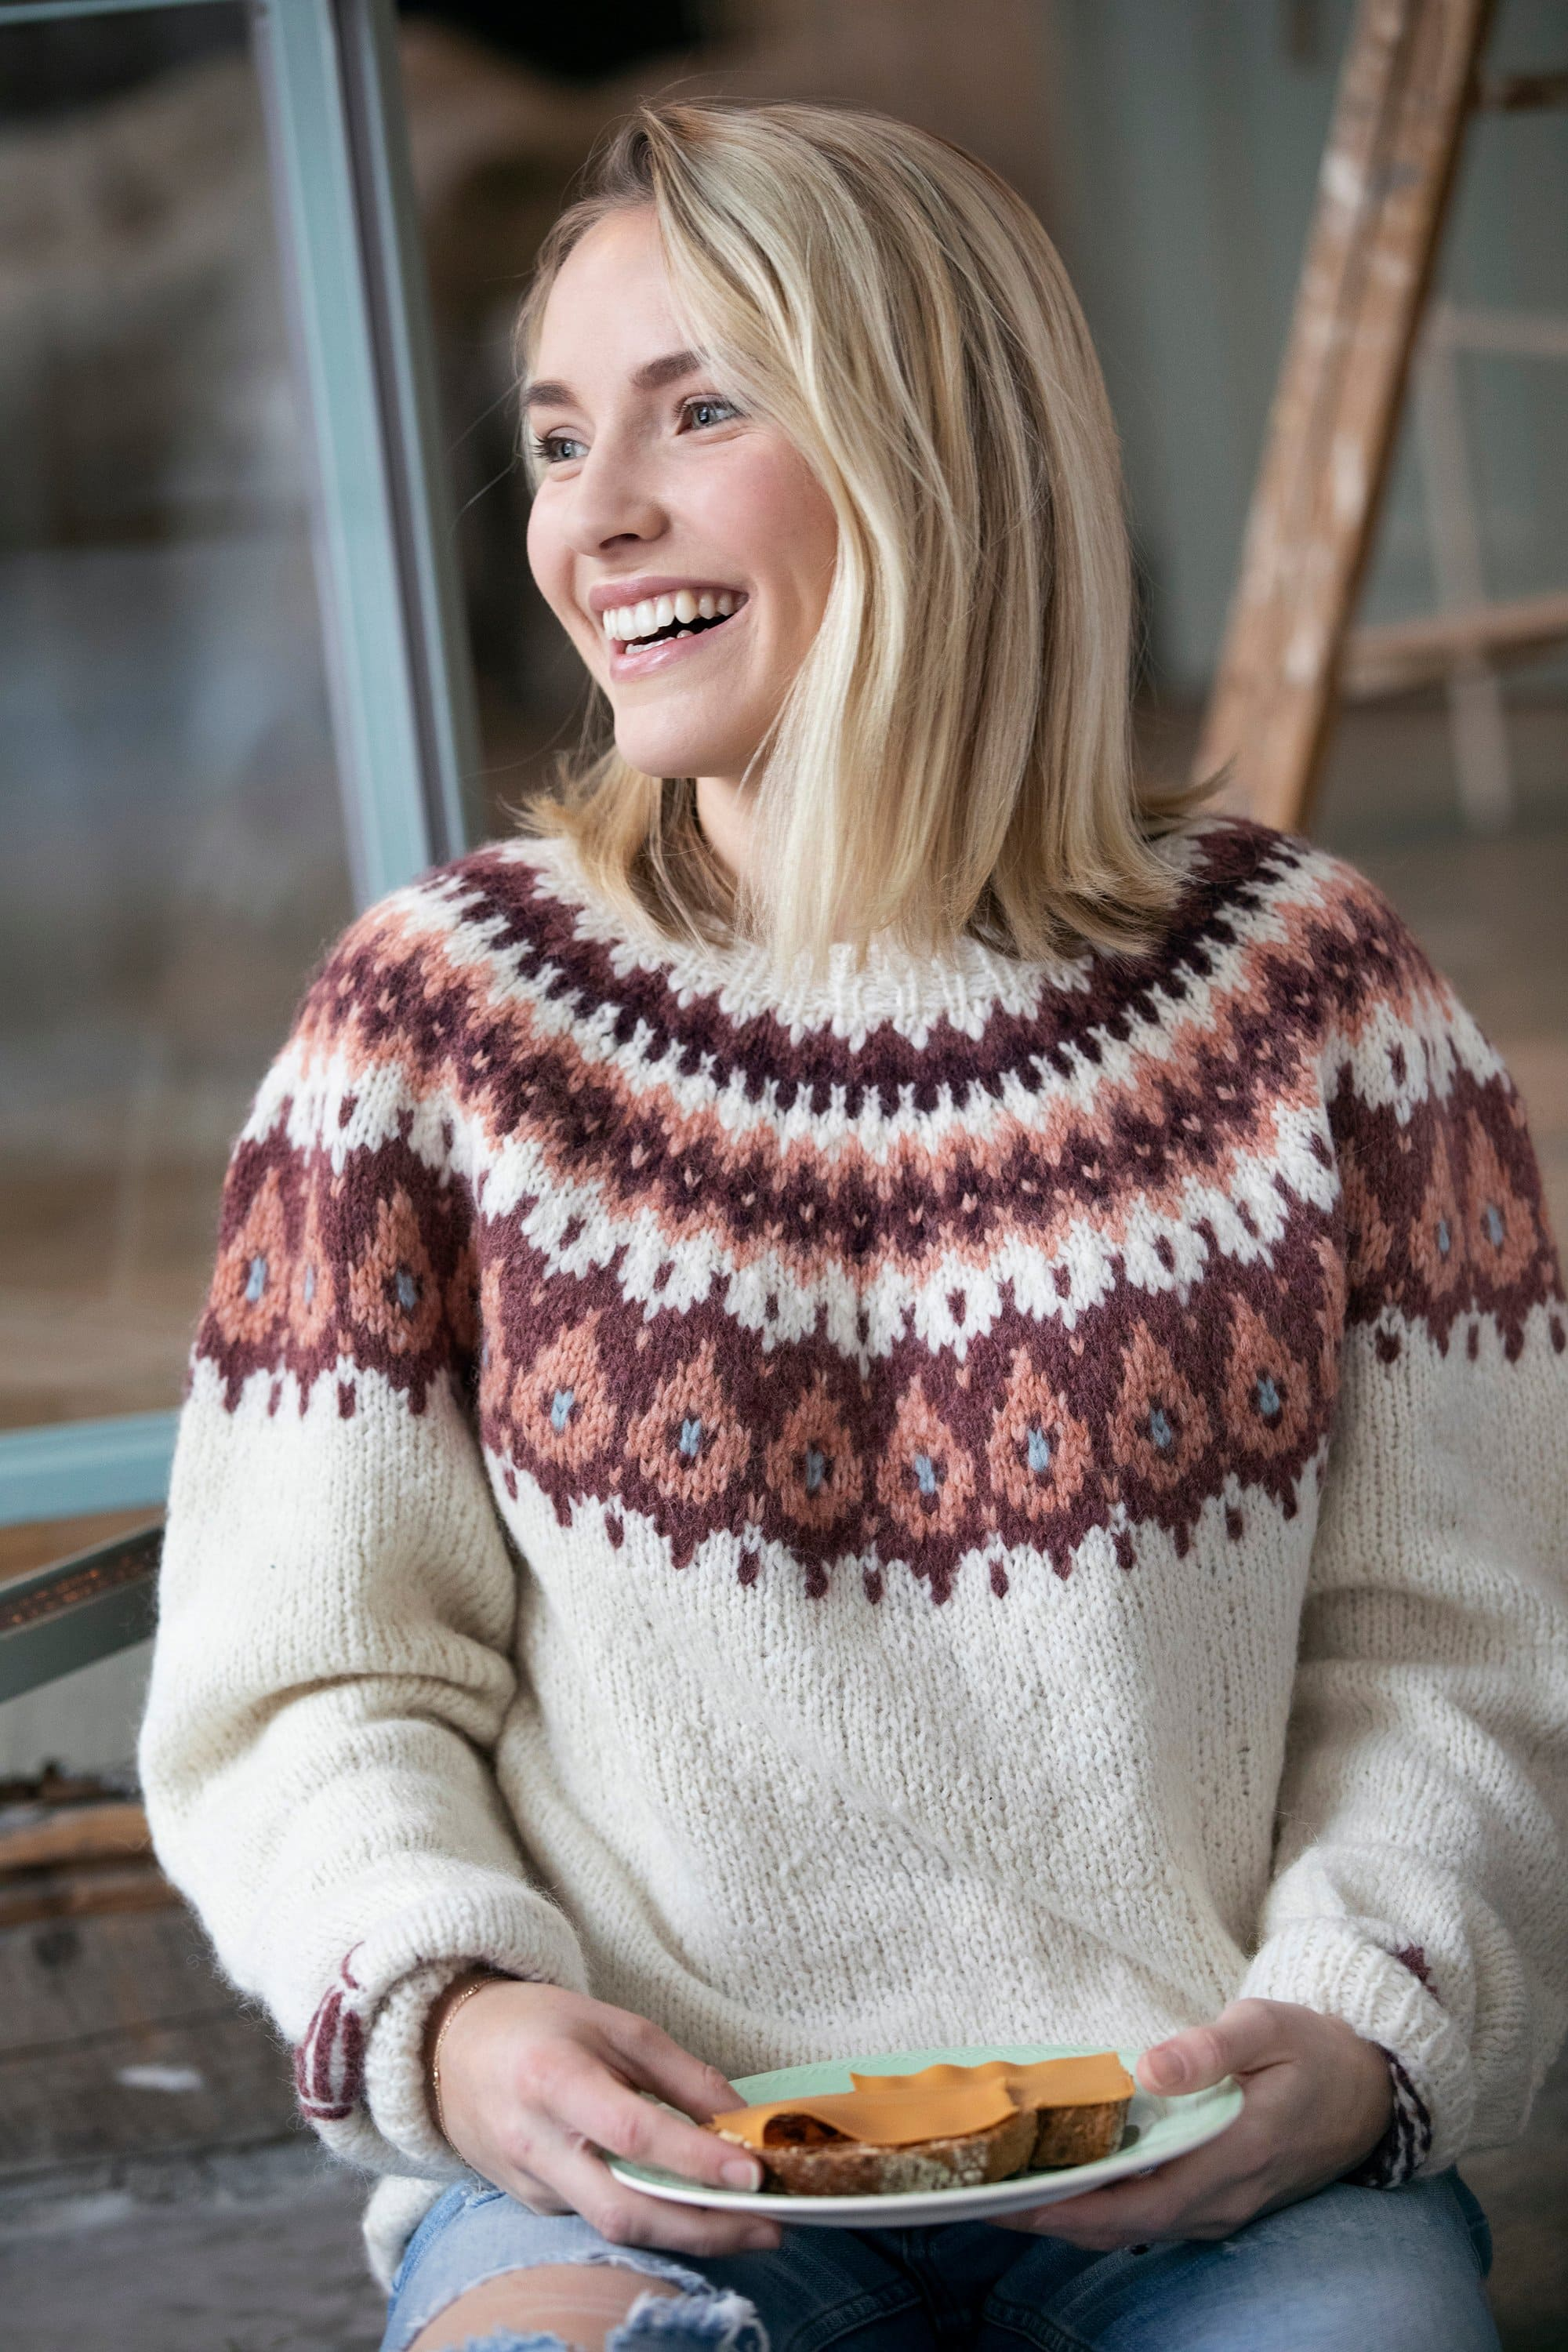 Girl smiling while wearing the Brunost sweater